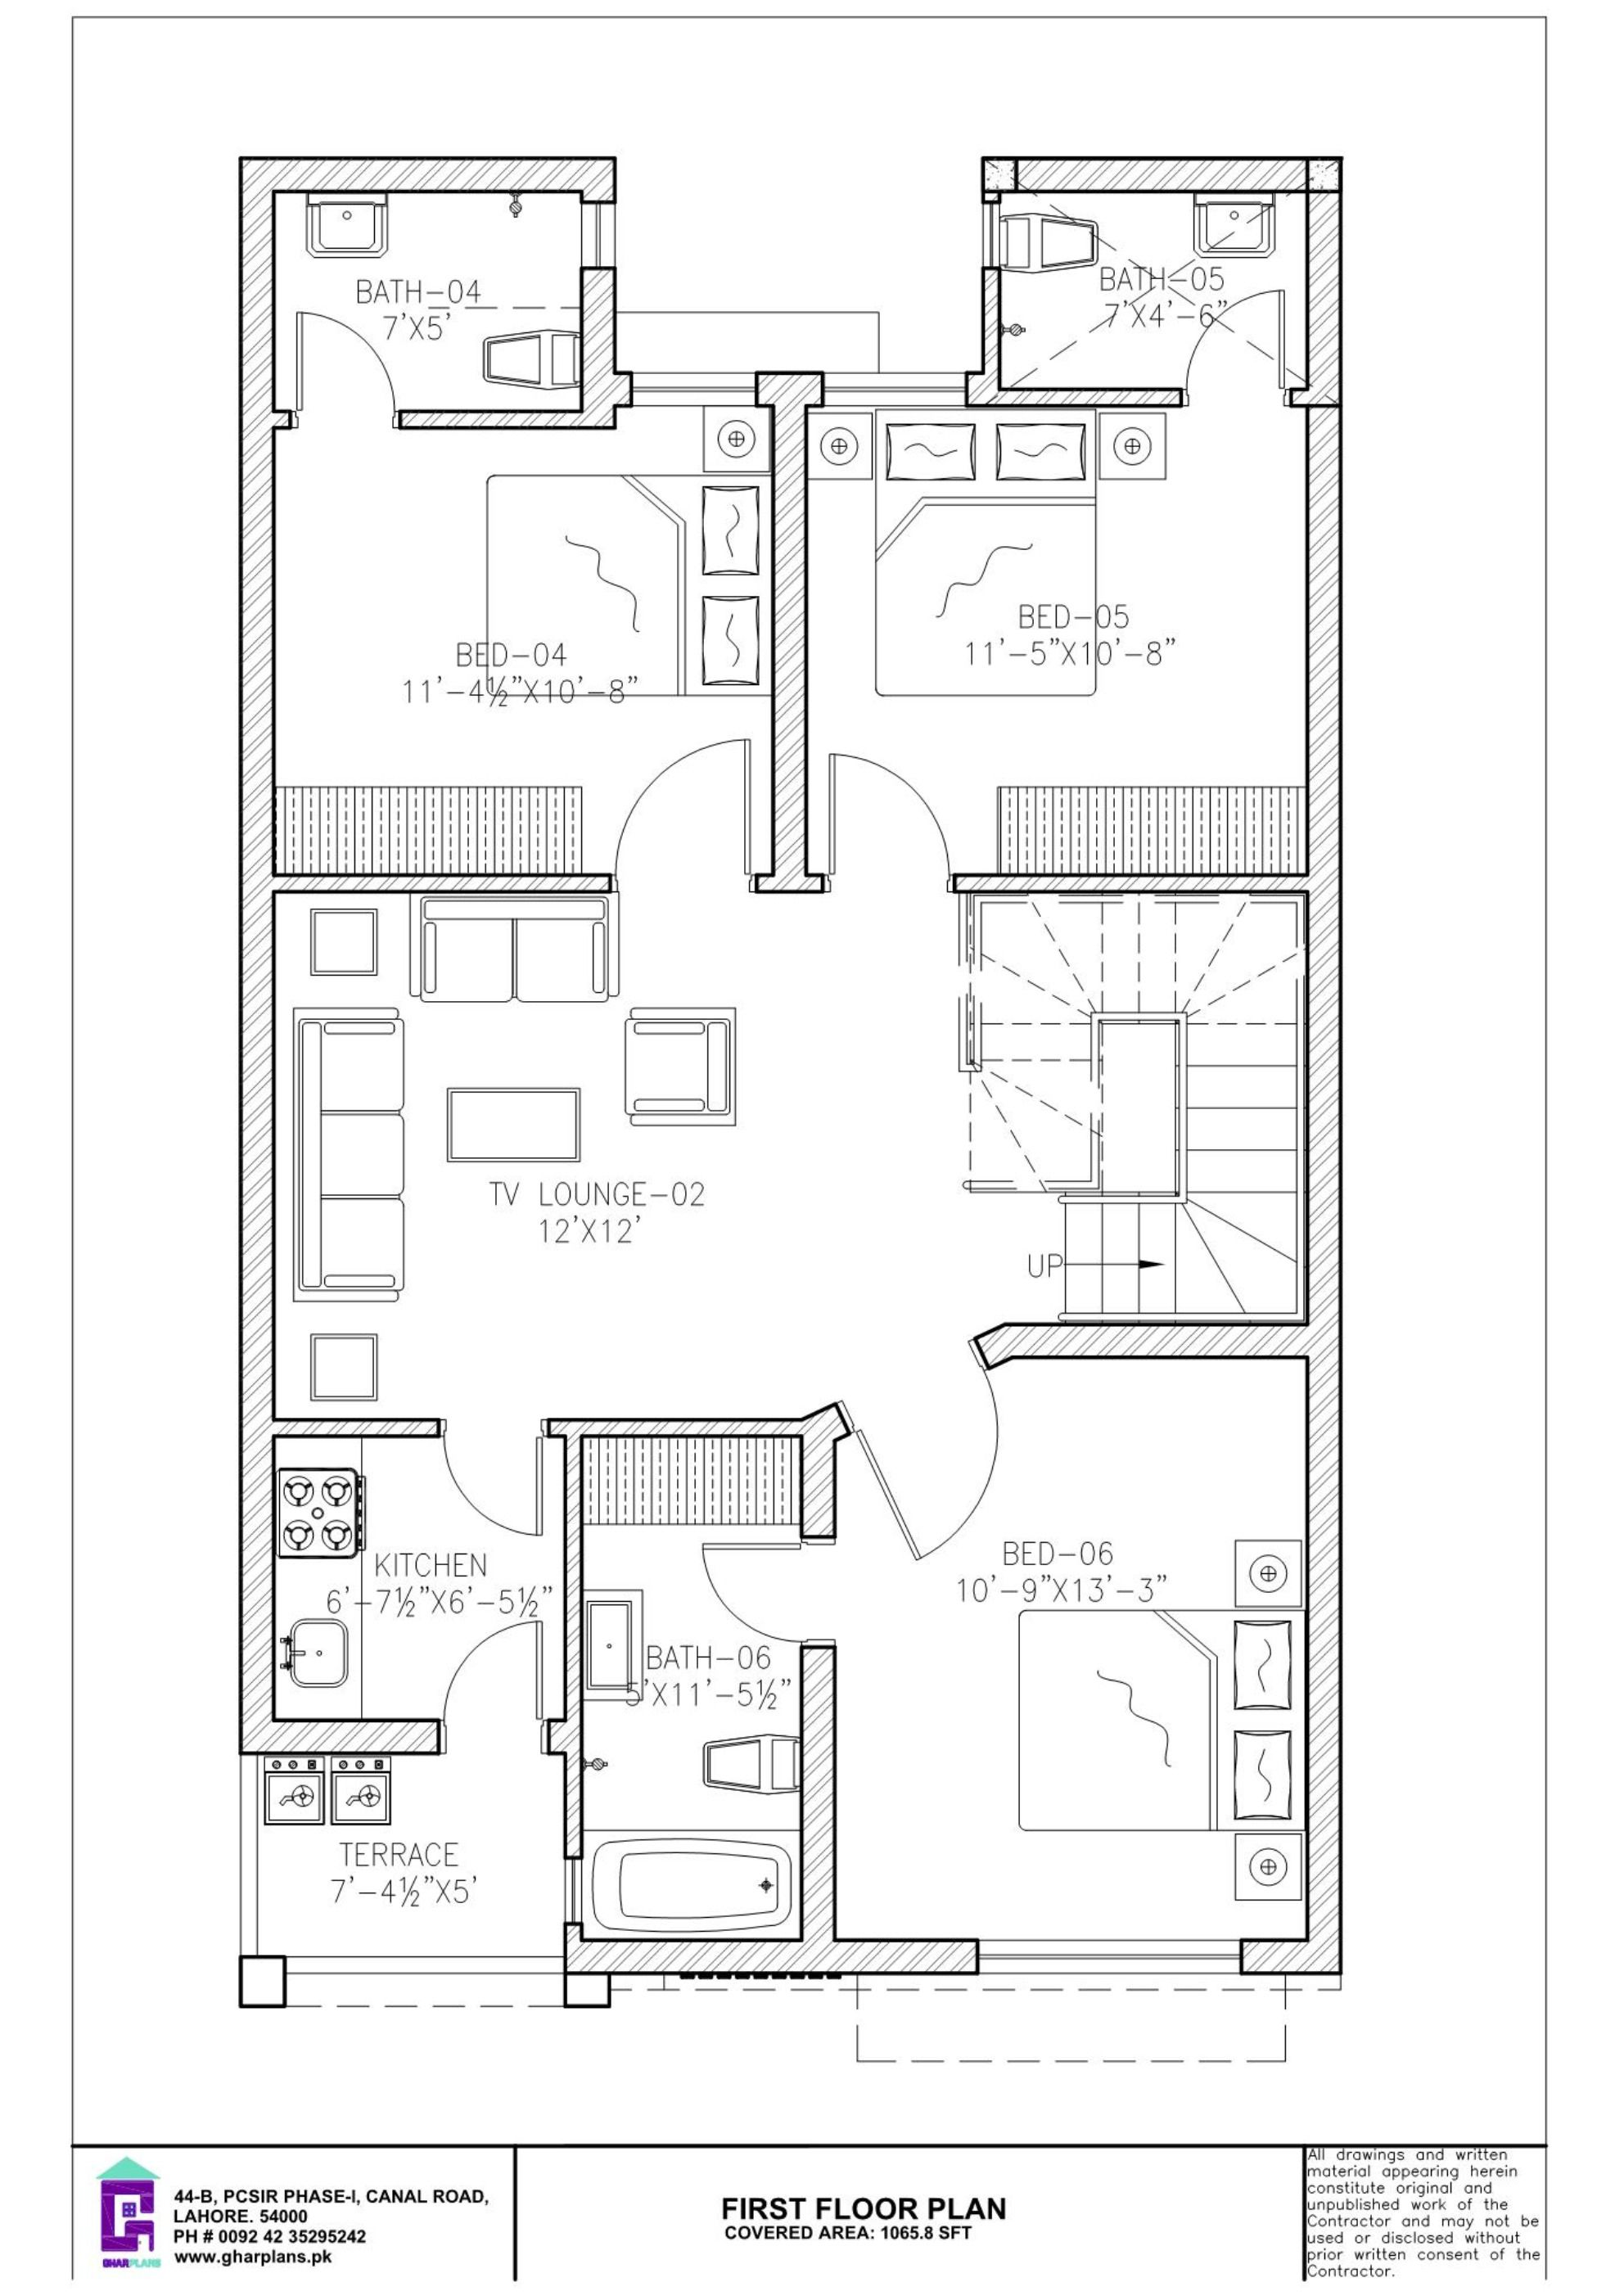 6 Bedroom 5 Marla First Floor Plan Floor Plan Layout Indian House Plans 5 Marla House Plan